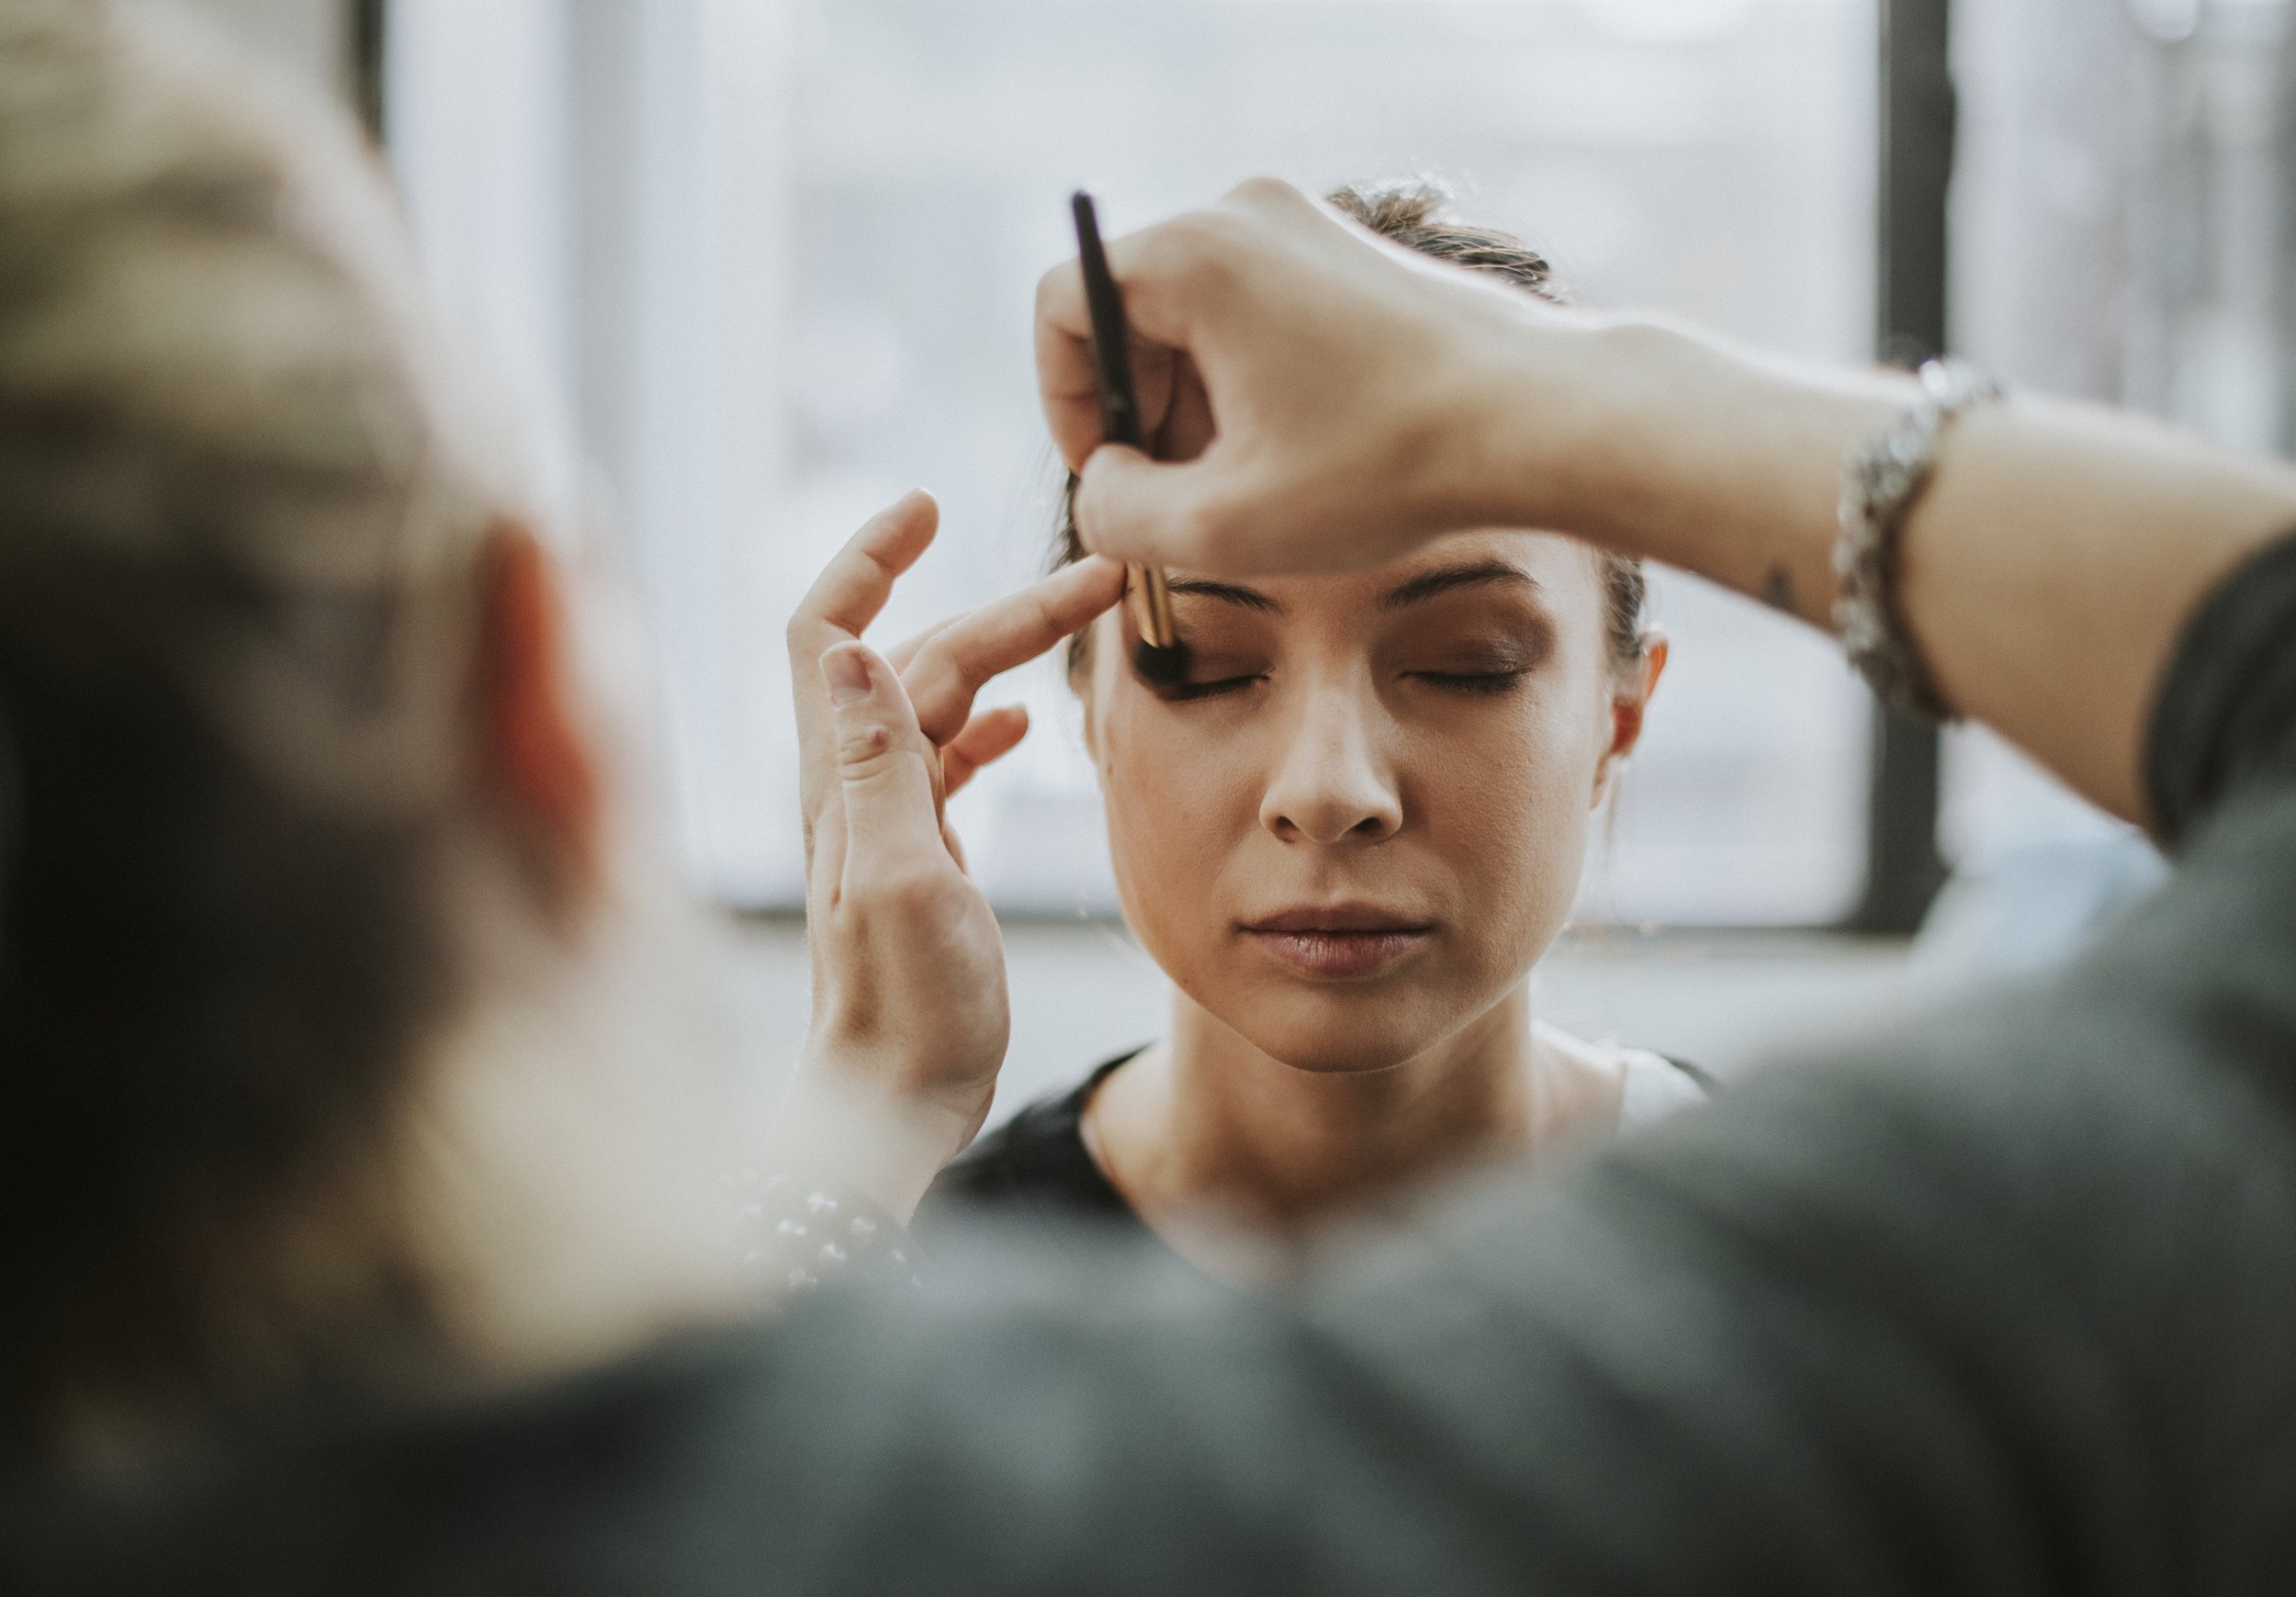 Makup Application - Makeup application is available for special events. Learn professional application techniques and tips from an expert to assist in your every day makeup routine.Application / $95Lesson / $145Bridal Party Application / $110False Eyelash Application / $35